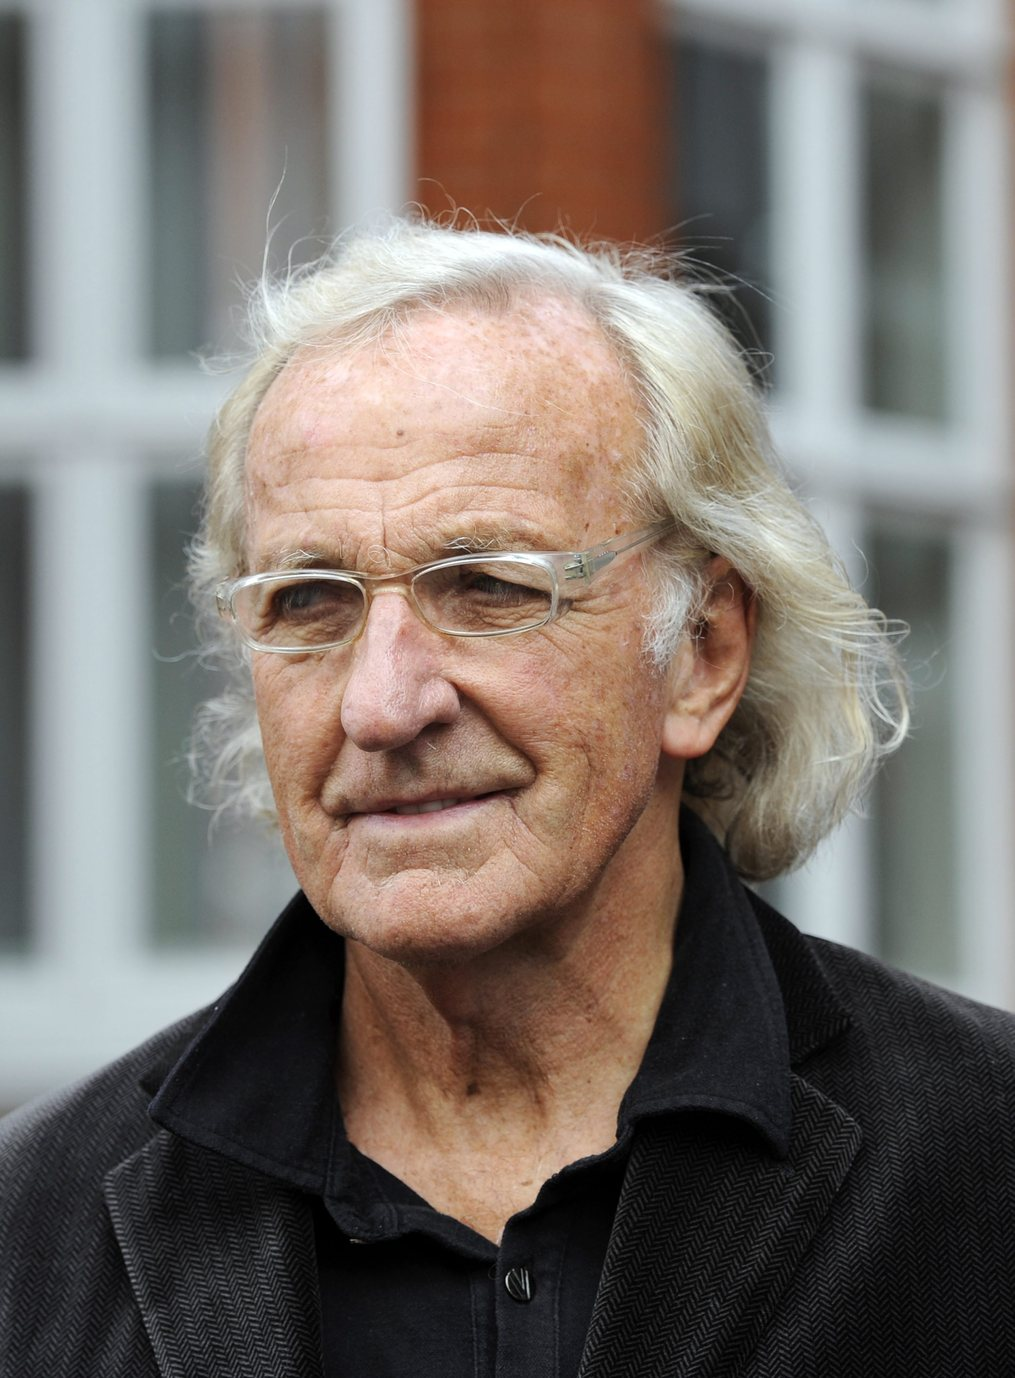 epa03277228 Australian broadcaster and journalist John Pilger arrives at the Ecuador embassy where Wikileaks founder has sought political asylum, in London, Britain, 22 June 2012. Julian Assange remains inside the Ecuadorean embassy after three nights. Assange, 40, faces extradition to Sweden on allegations of sexual assault, after Britain's Supreme Court rejected his final appeal last week. A 10-day period of extradition begins on June 28. His arrival at the embassy was confirmed 19 June by Ricardo Patino, Ecuador's Foreign Minister, in Quito. He said Assange, an Australian citizen, had requested political asylum. EPA/FACUNDO ARRIZABALAGA EPA/FACUNDO ARRIZABALAGA